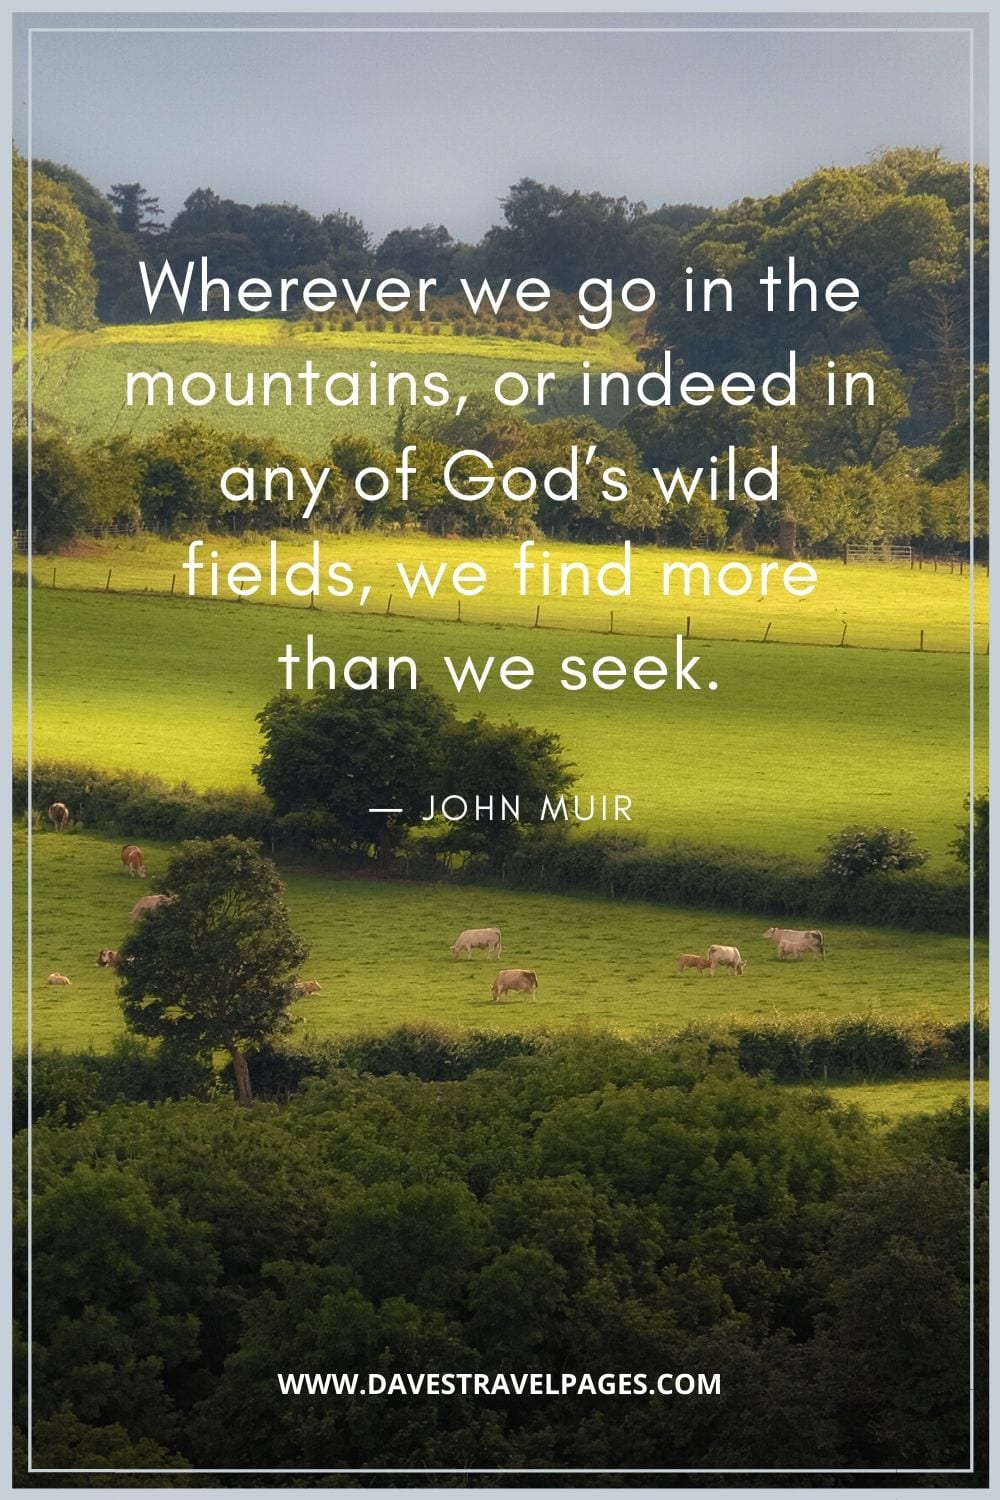 """""""Wherever we go in the mountains, or indeed in any of God's wild fields, we find more than we seek.""""― John Muir"""